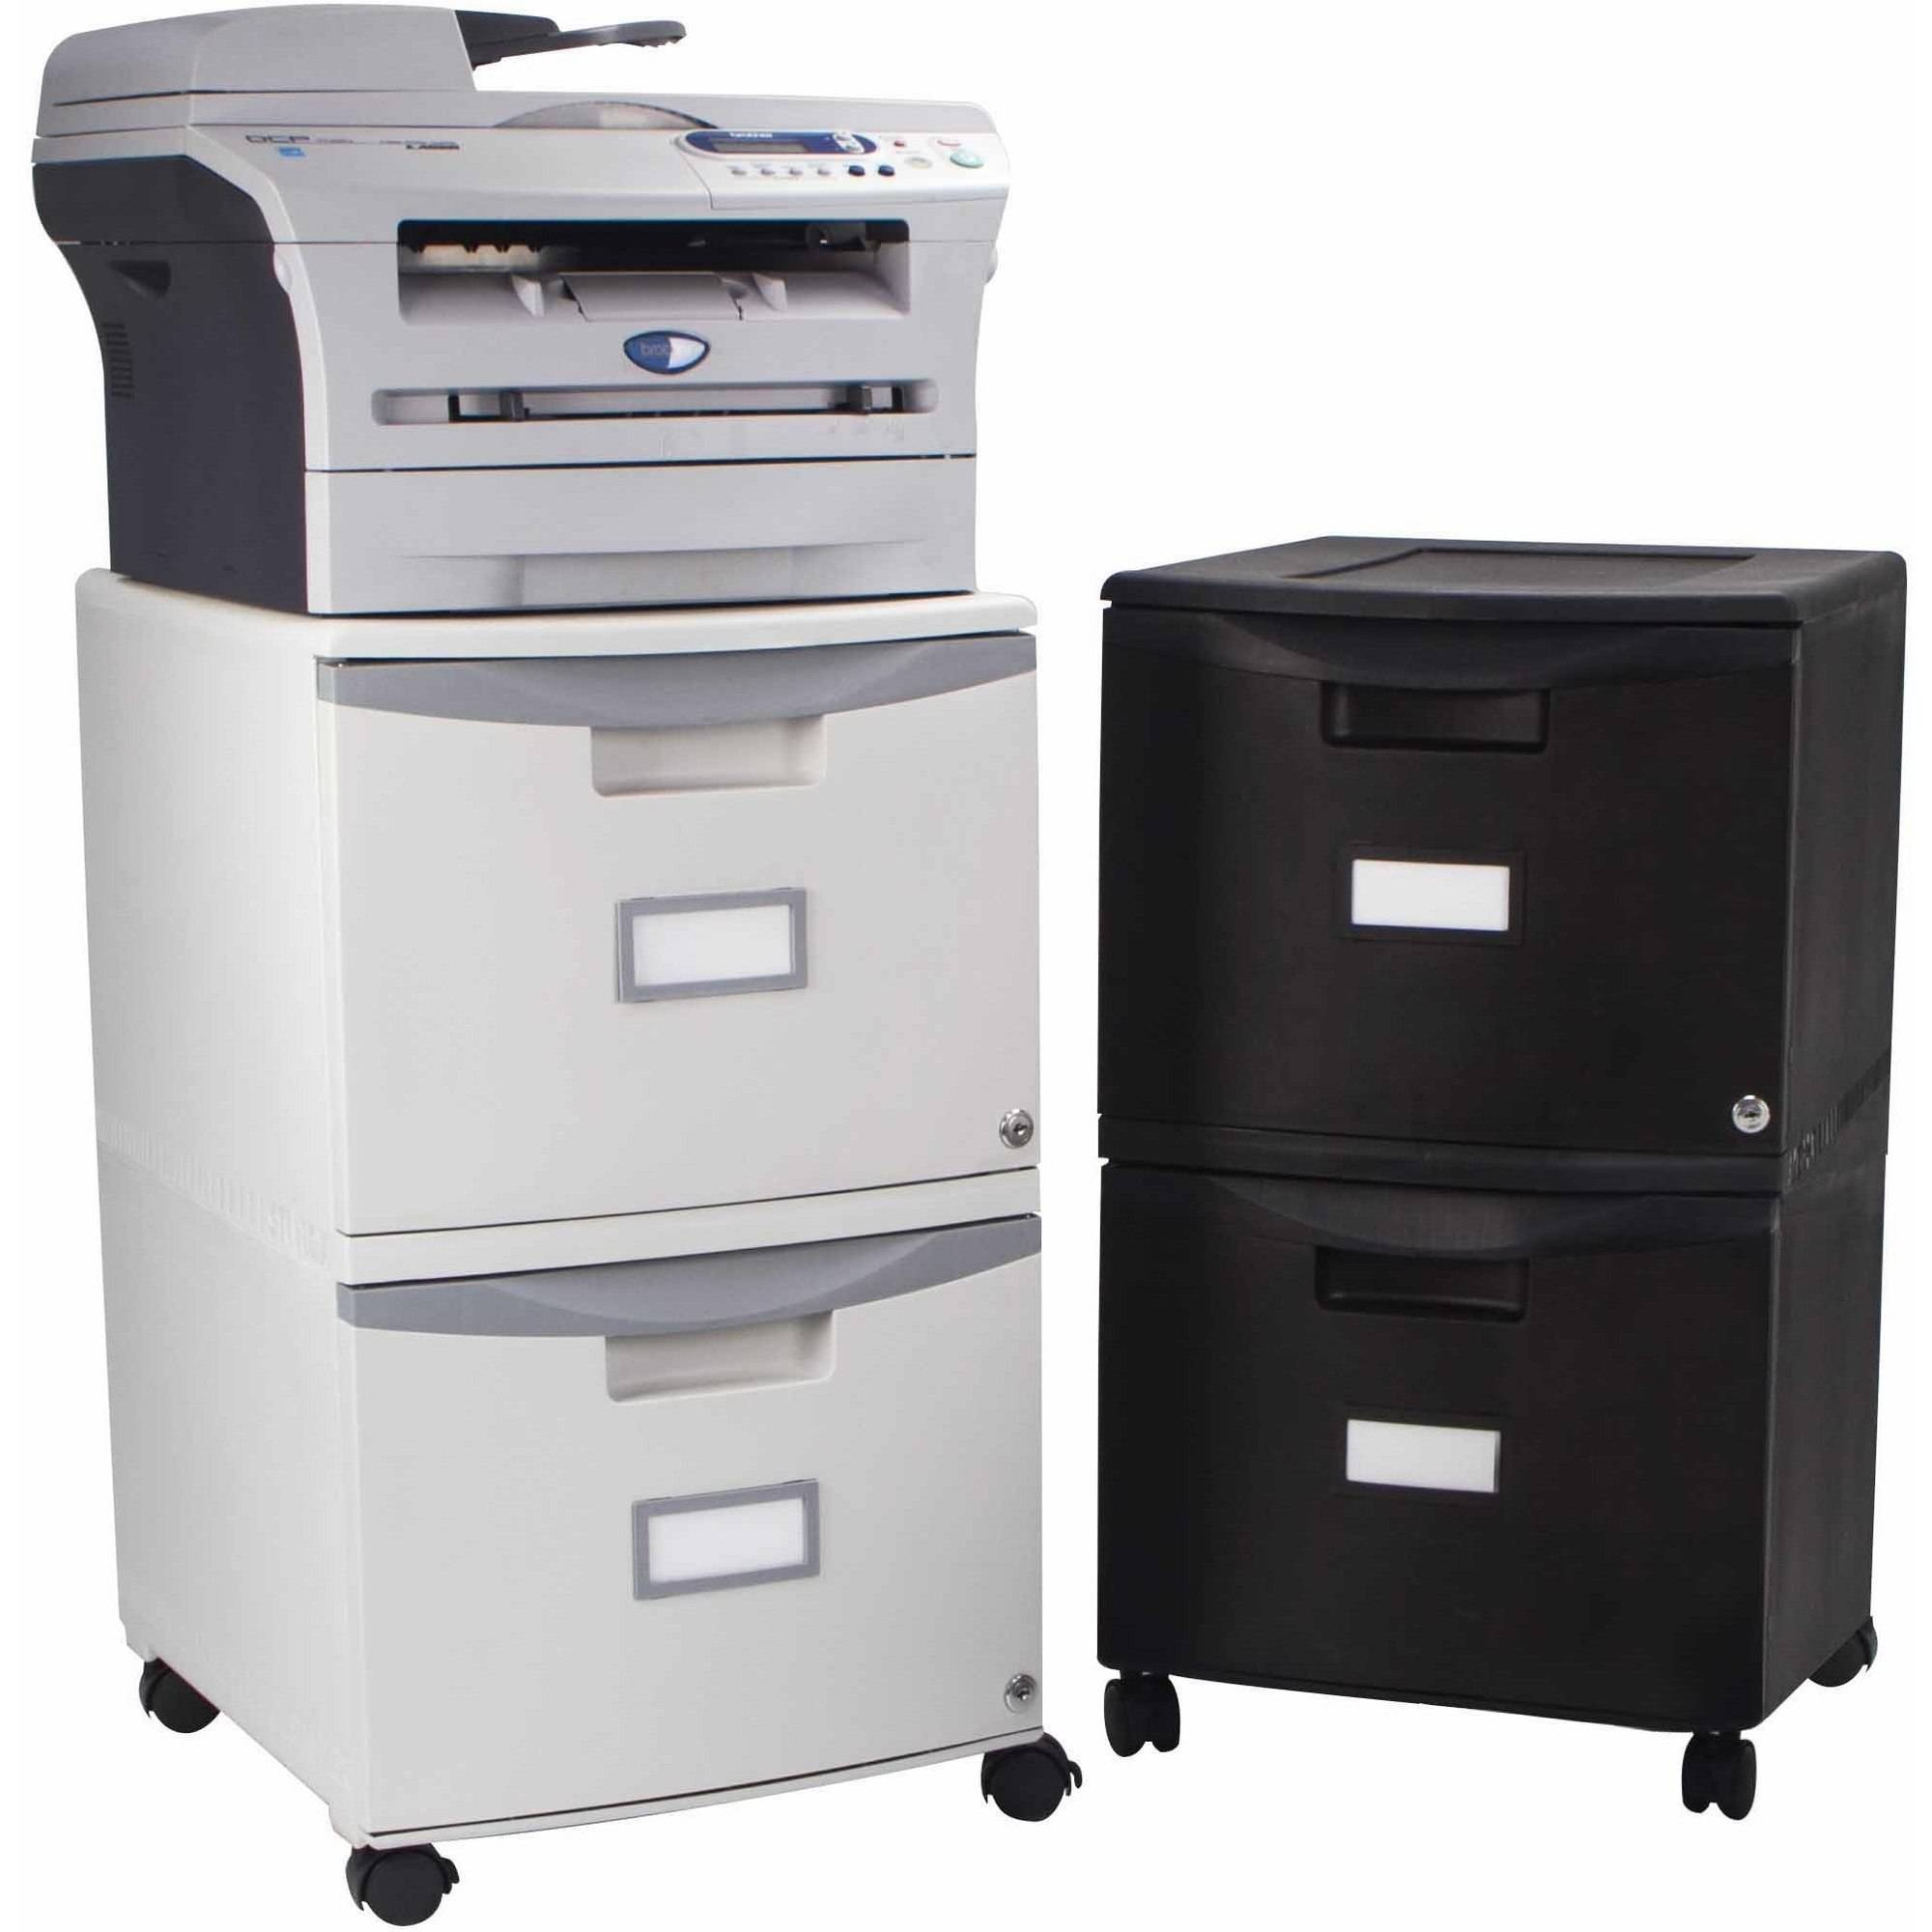 Storex 2 Drawer Mobile File Cabinet With Lock And Casters, Legal/Letter  Image